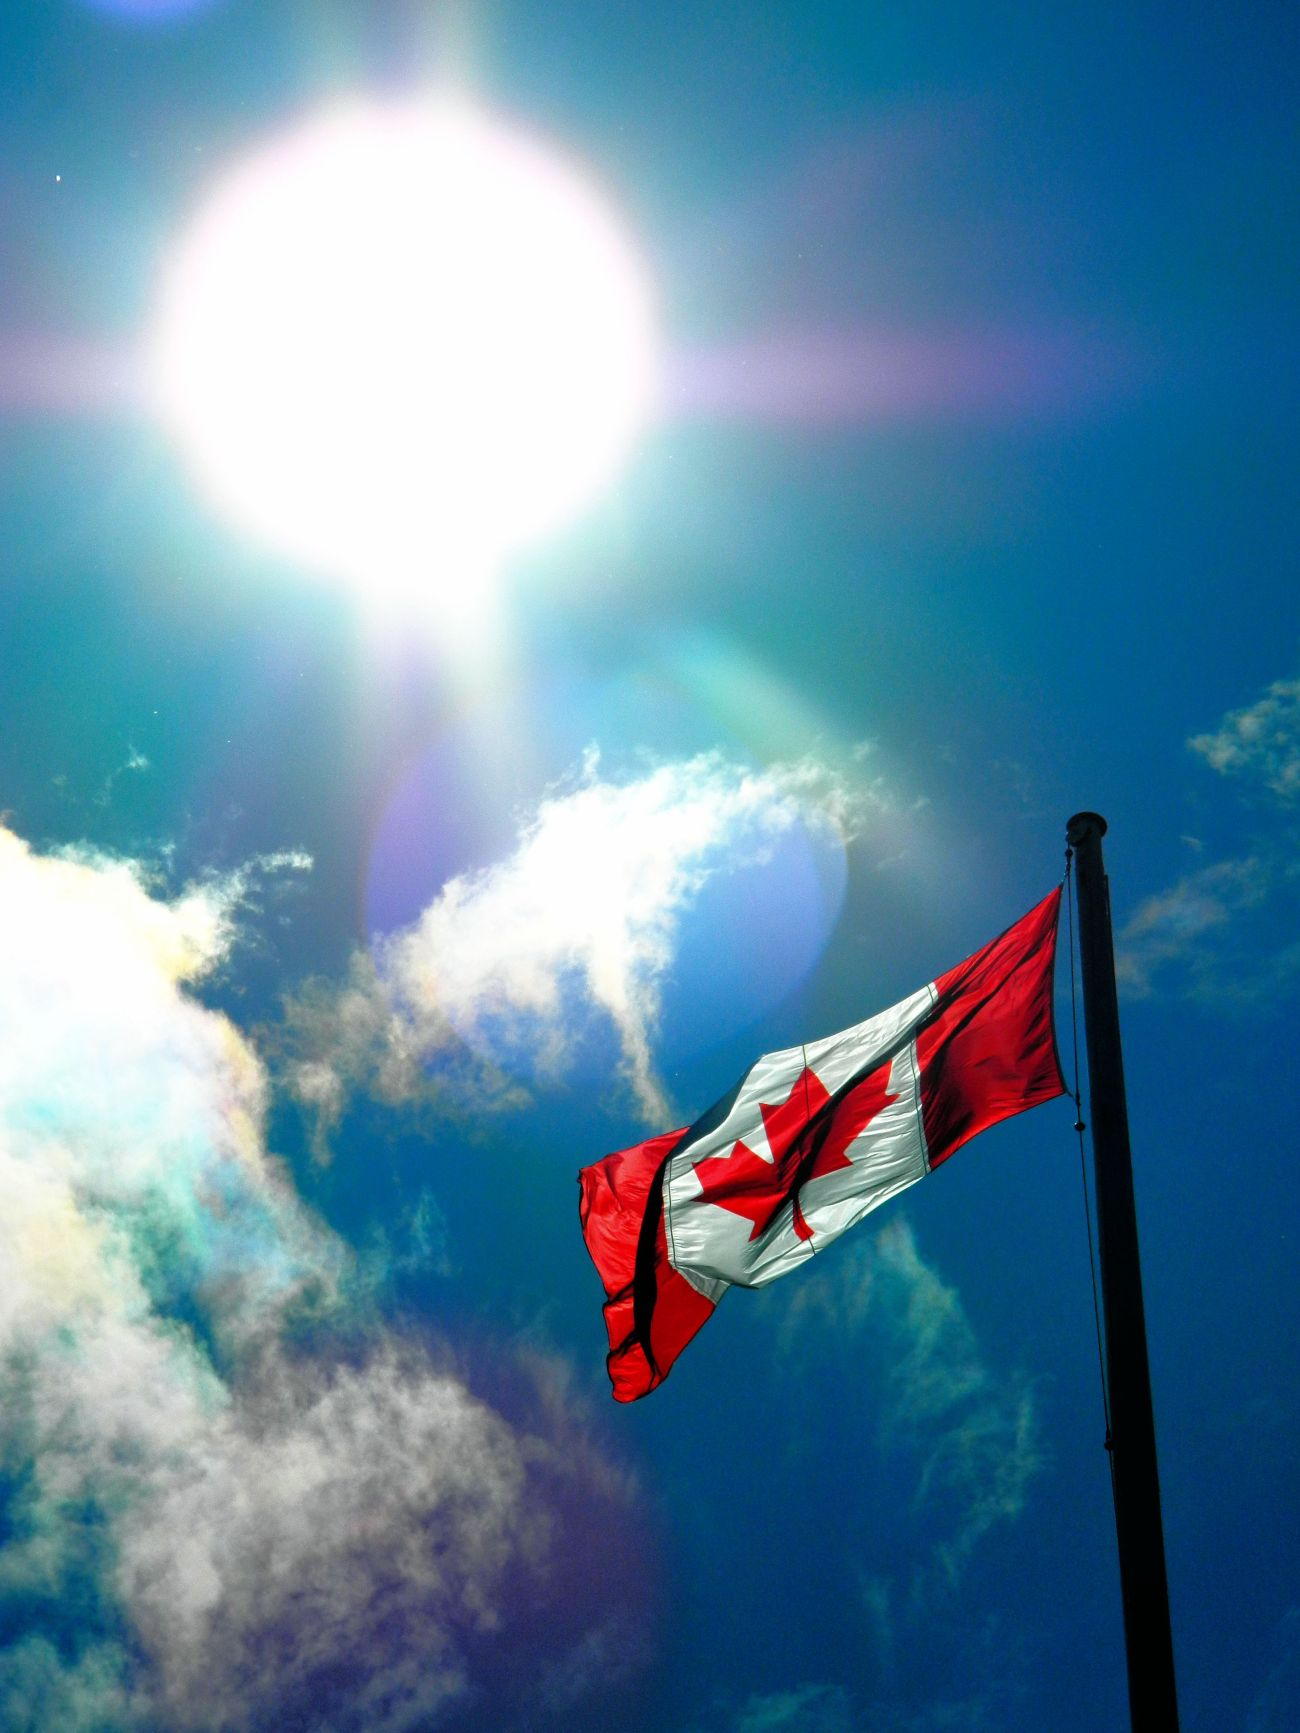 Flag of Canada waves in the halo of the glorious sun.